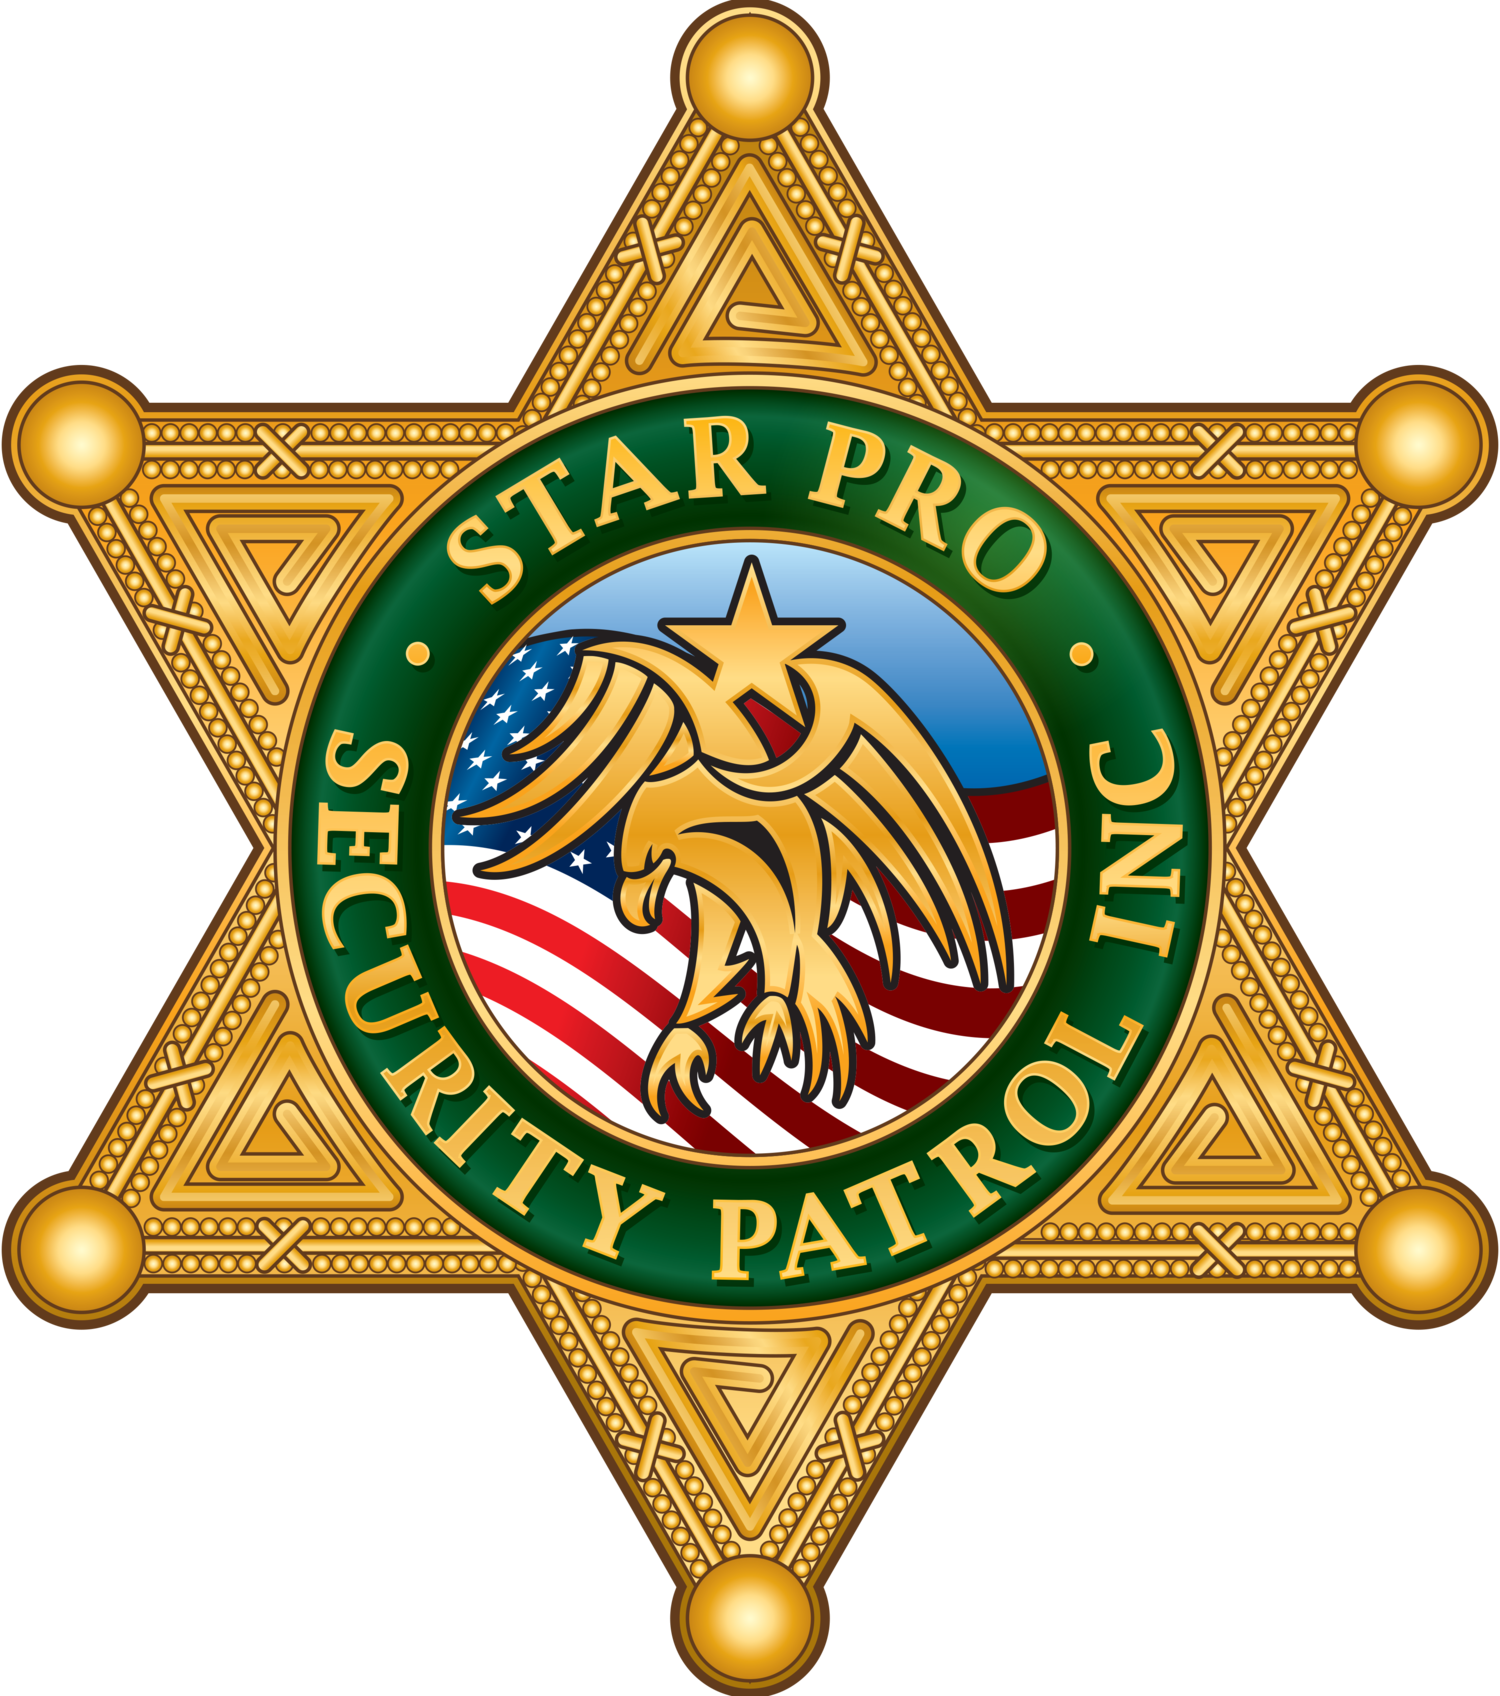 Star Pro Security Patrol